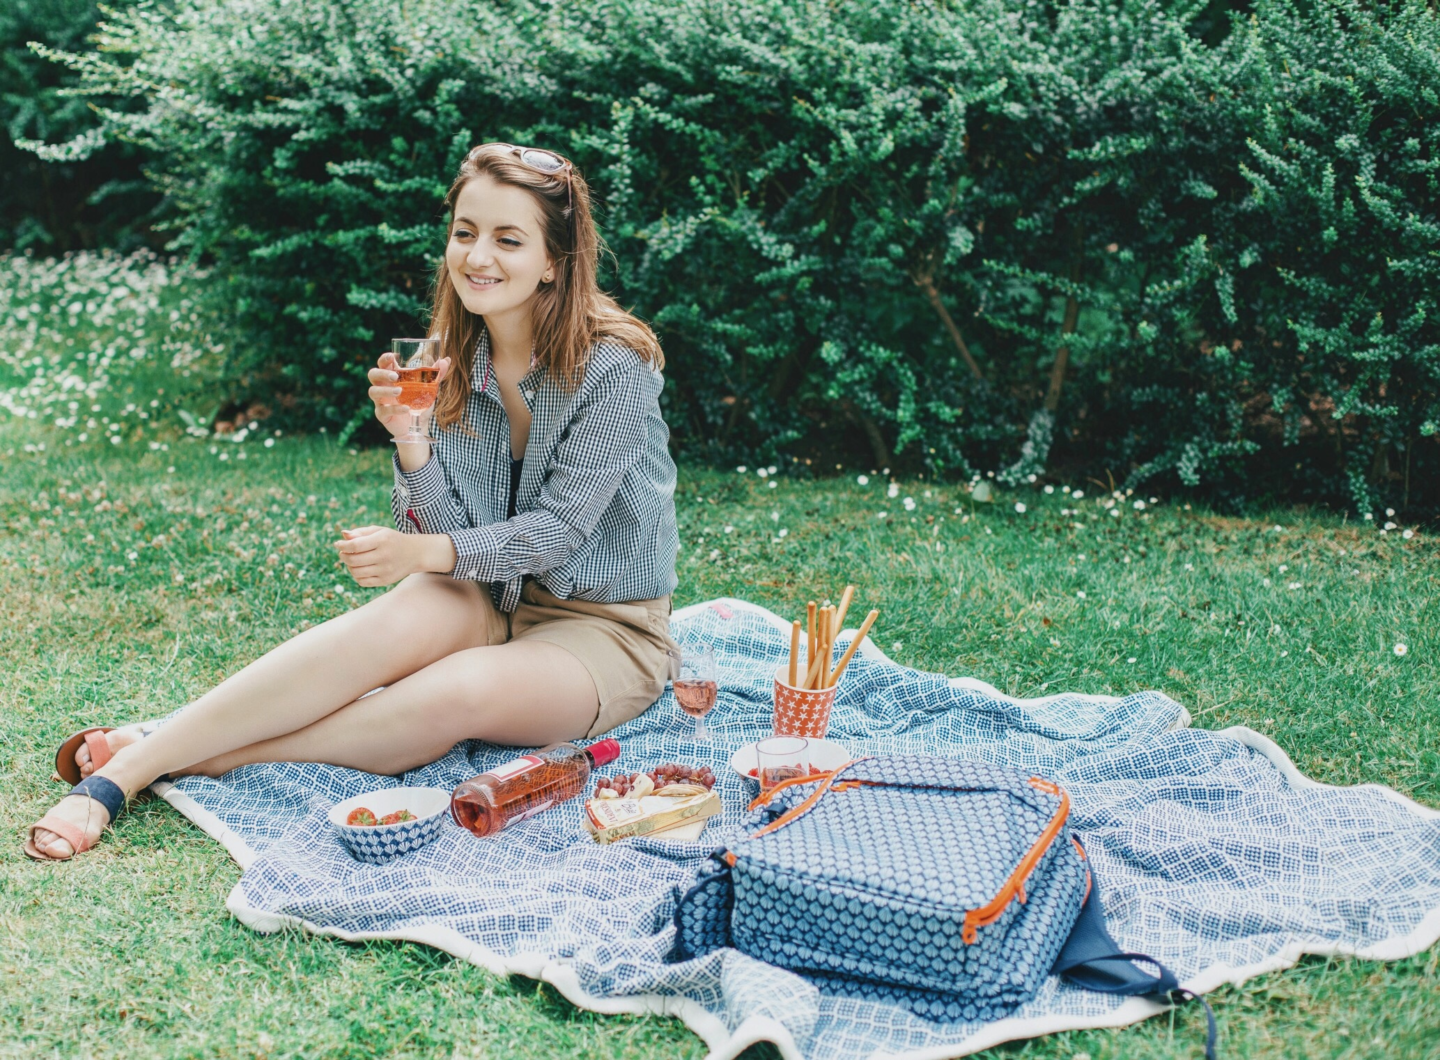 Escape to the great outdoors - picnic in the Cotswolds